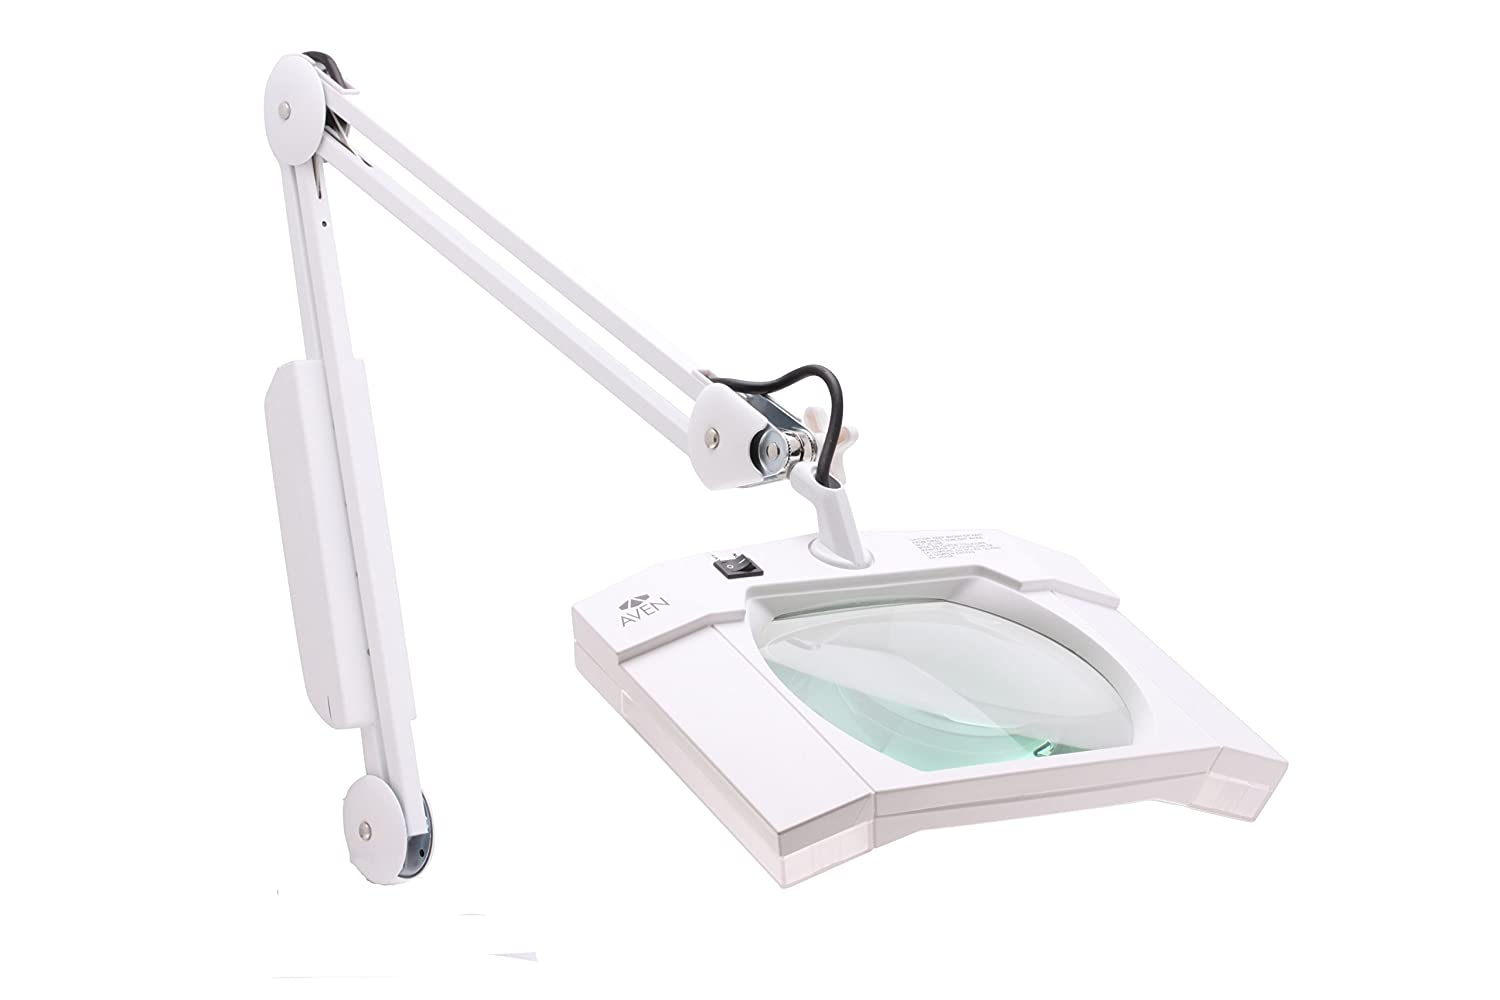 led lamp for within lamps desk amazing magnifier glass with daylight lighted magnifying light